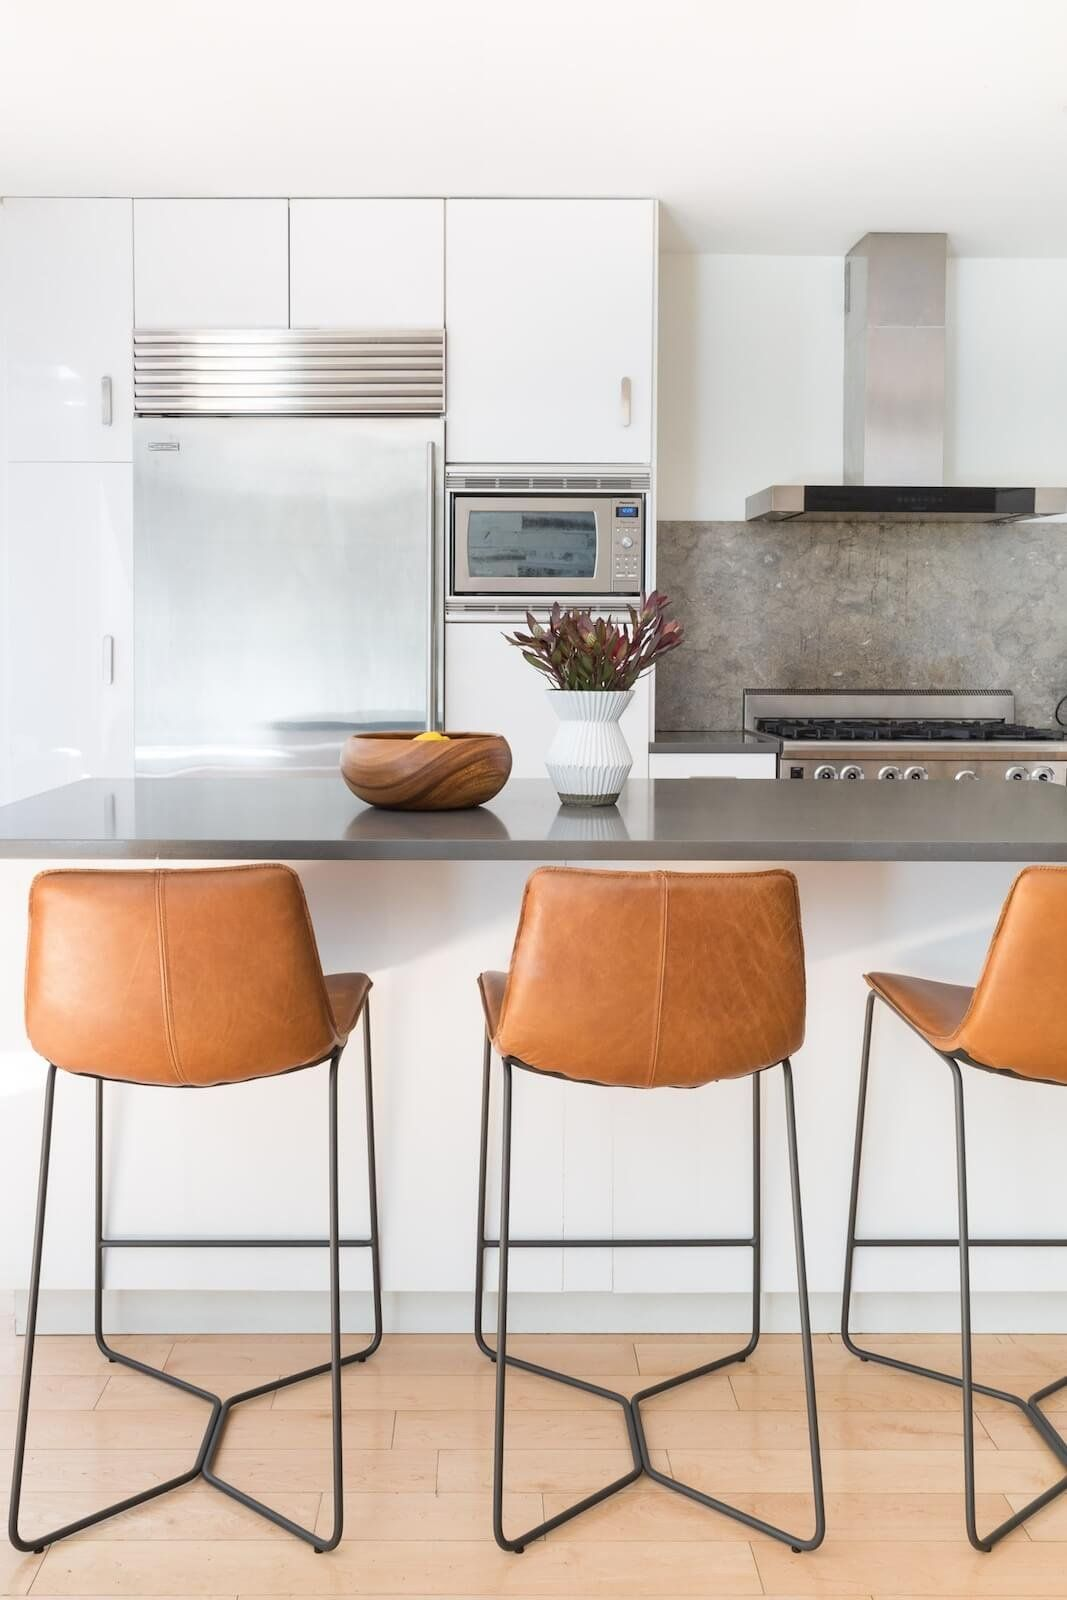 Spotted Our Saddle Leather Bar Stools tying together this condo